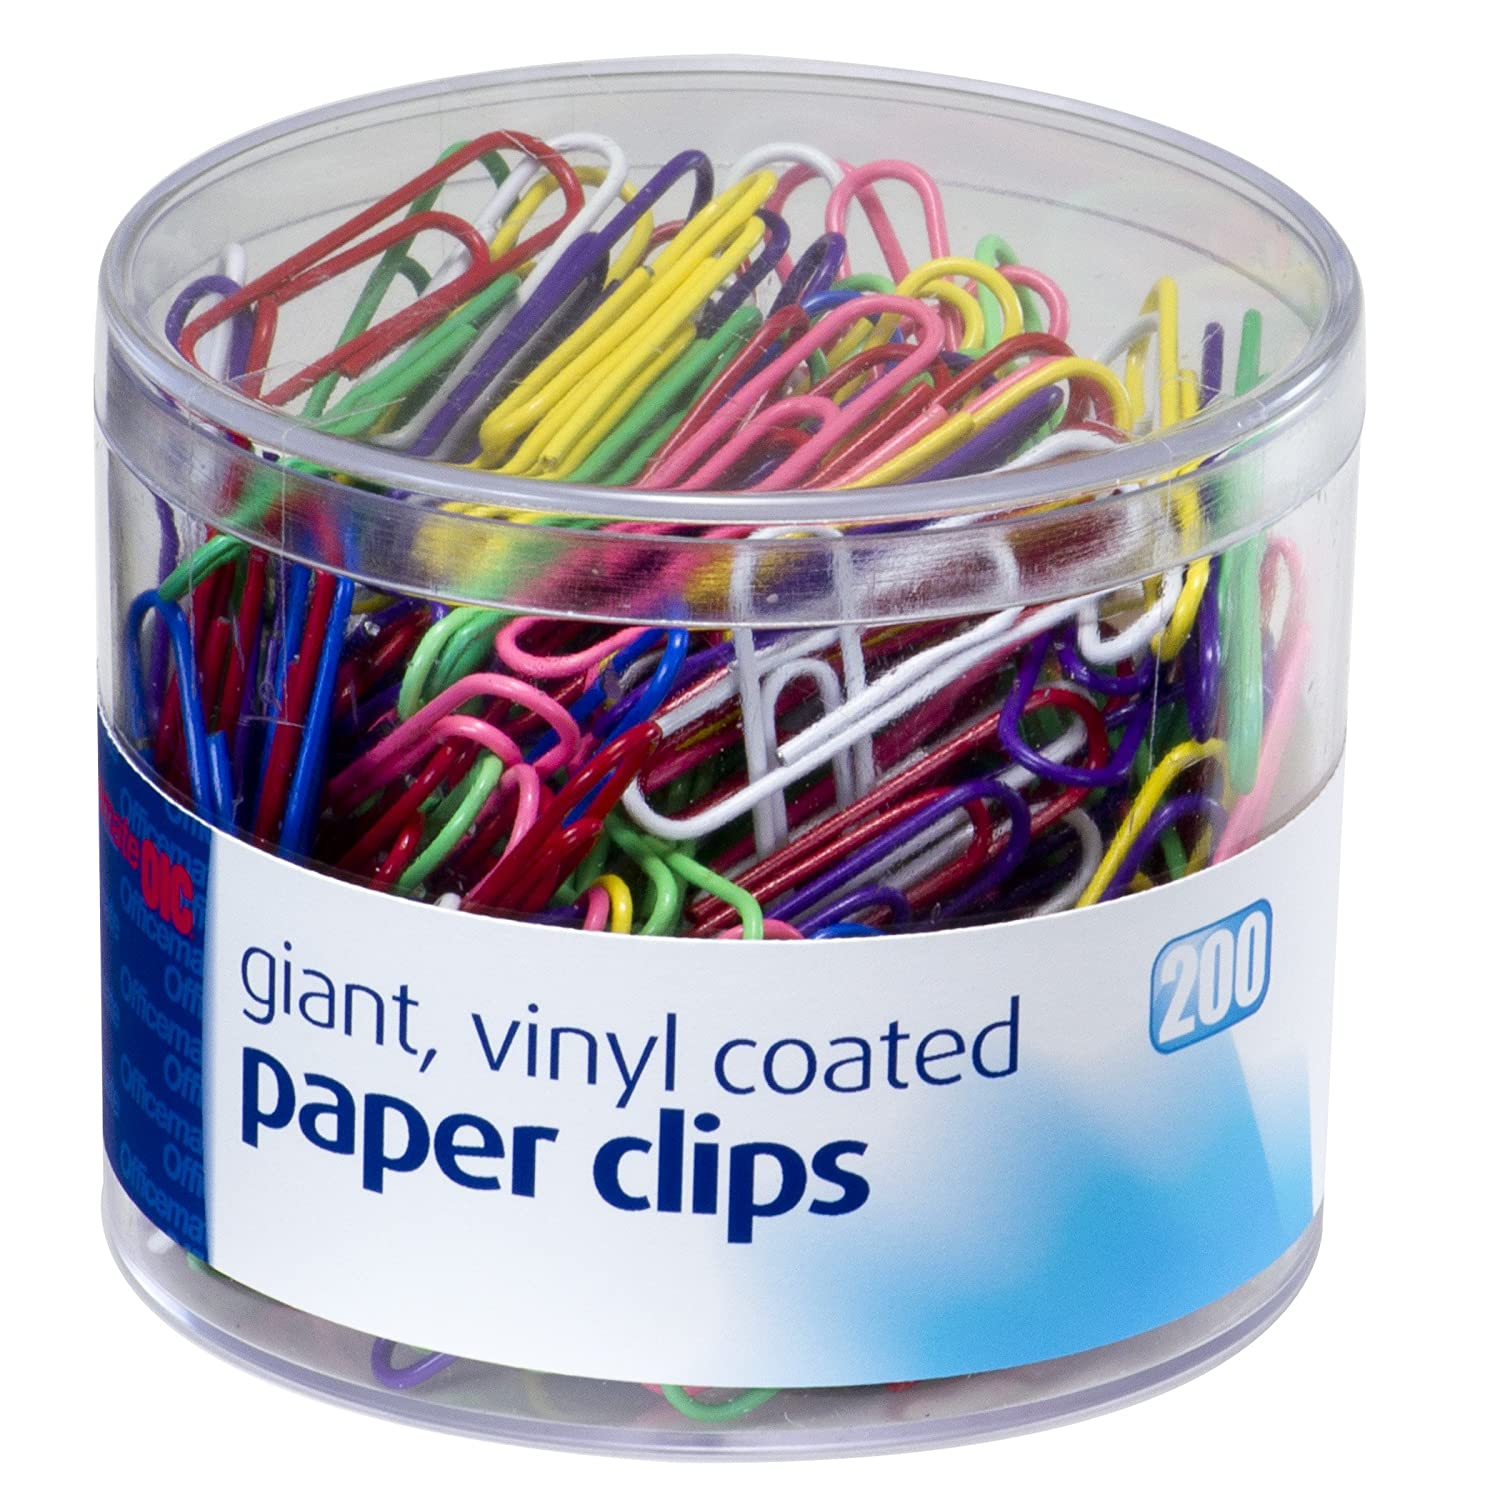 Officemate Assorted Color Giant Vinyl Paper Clips, 200 per Tub (97632) Officemate International